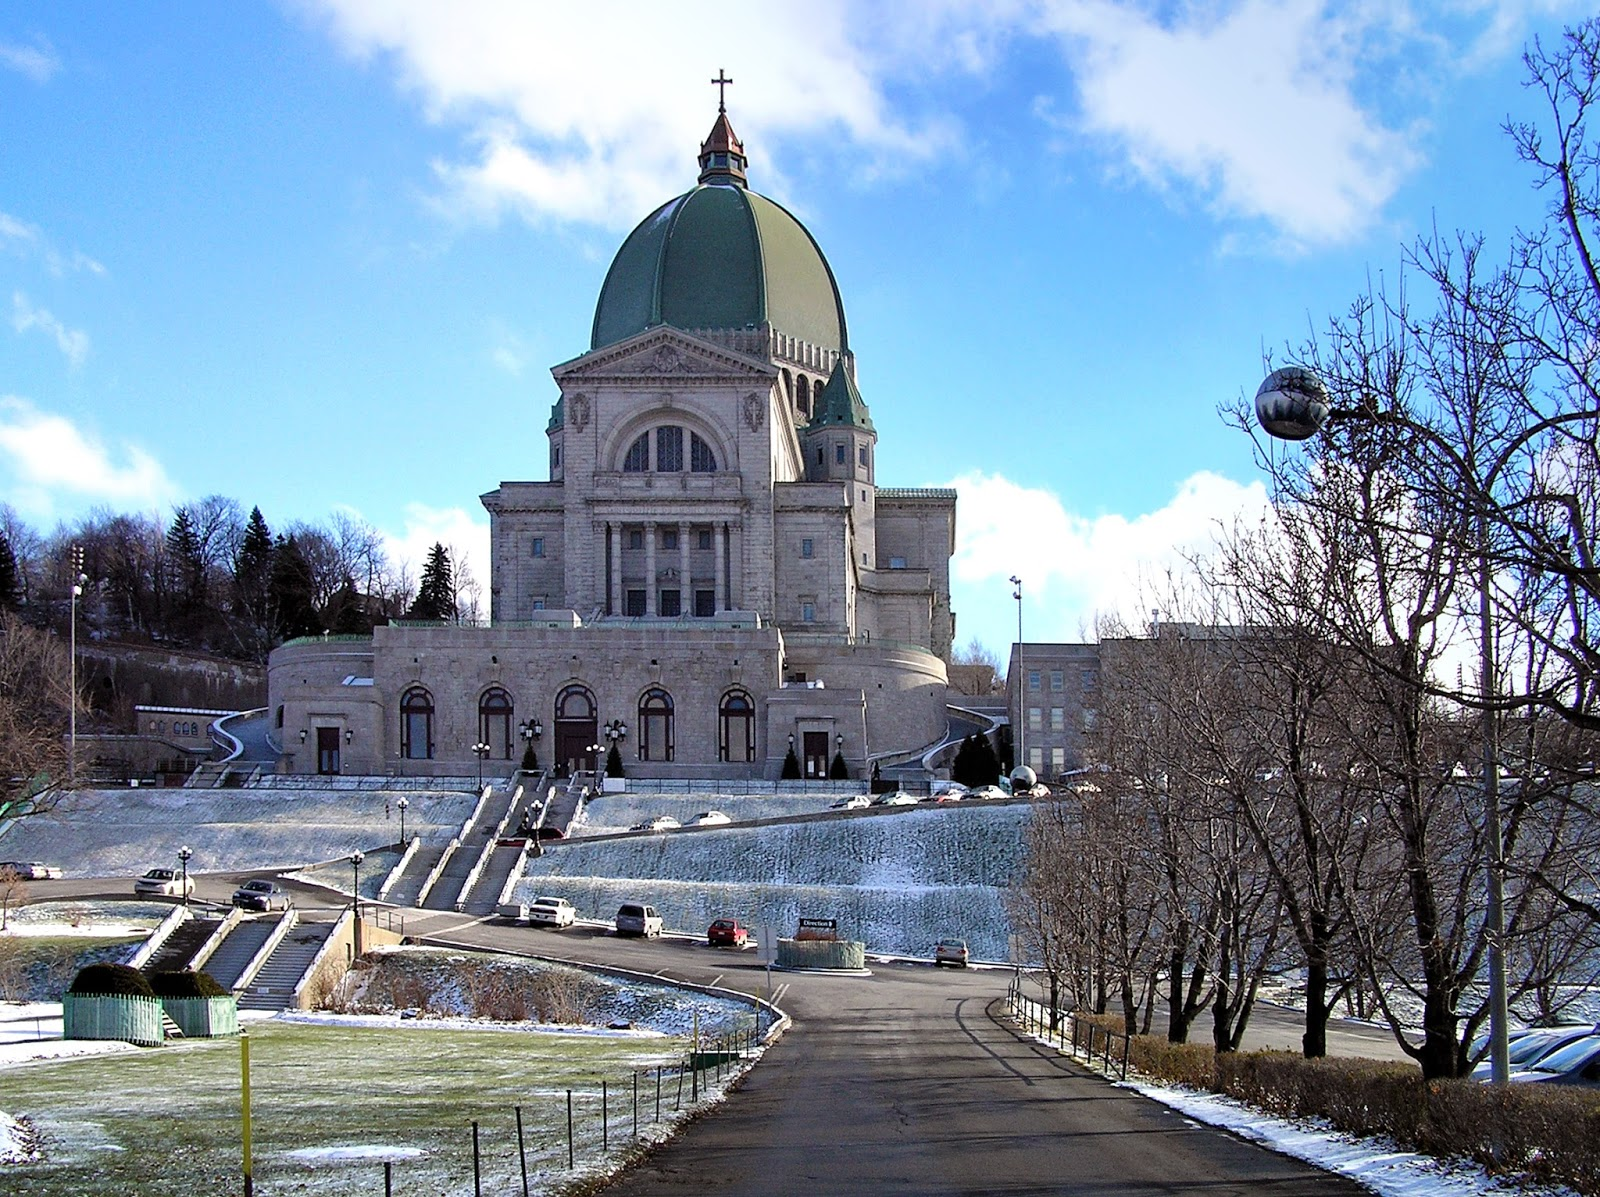 the quiet revolution of quebec and its effects on society For it is equally clear that in spite of its faults, the catholic church also did a world  of good  the effect on the quebec catholic church was profound   revolutions - 'quiet' or otherwise - are hard on people and societies.